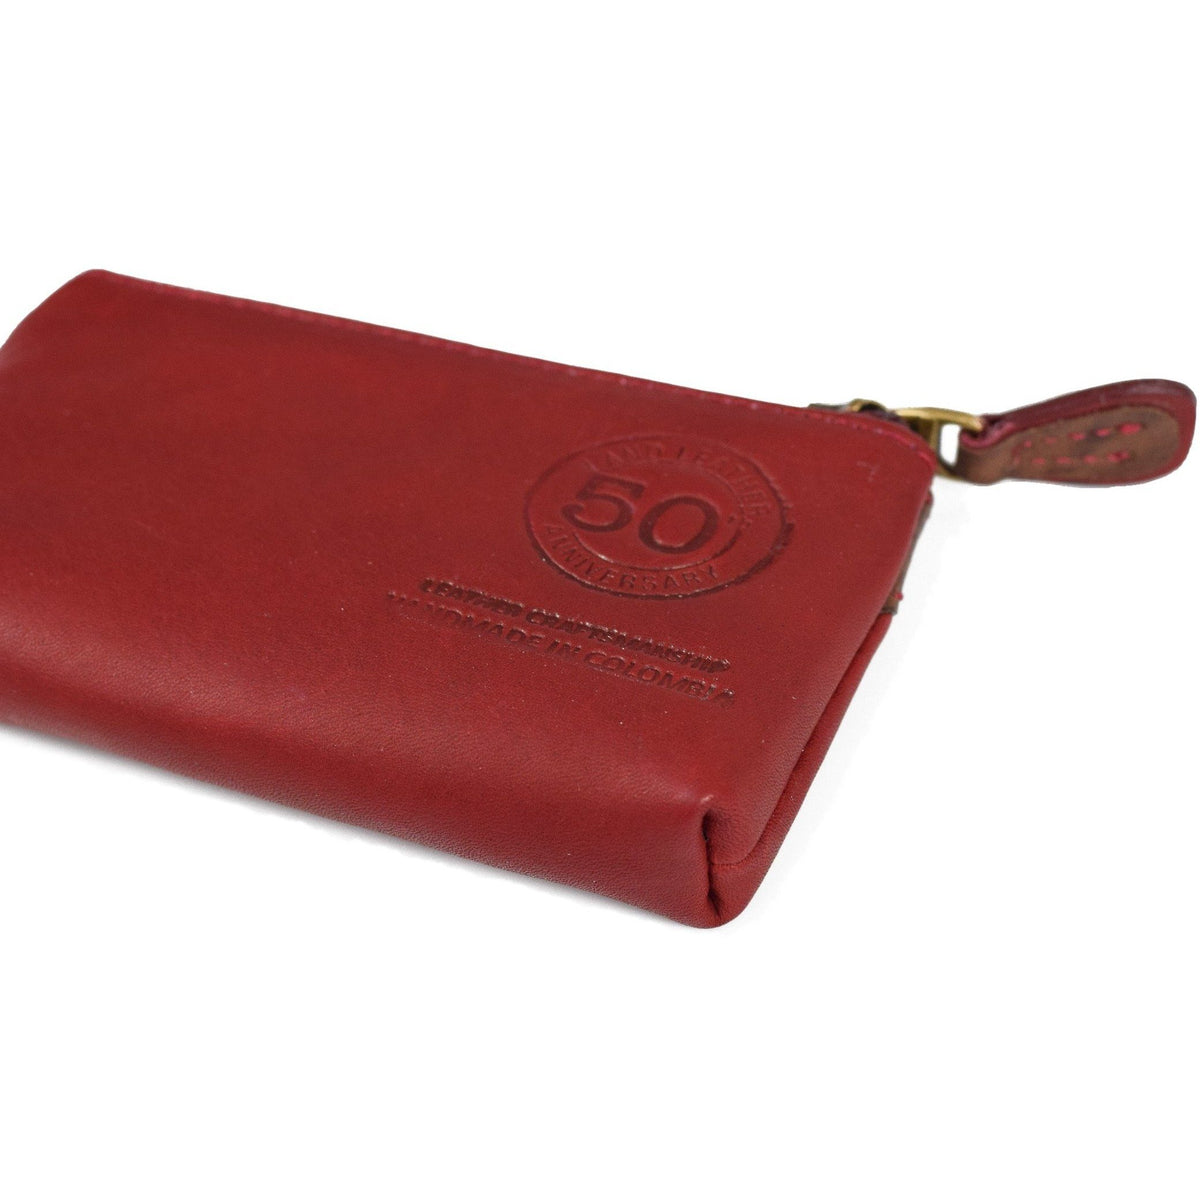 Anniversary Zippered Coin Case, Wallet | LAND Leather